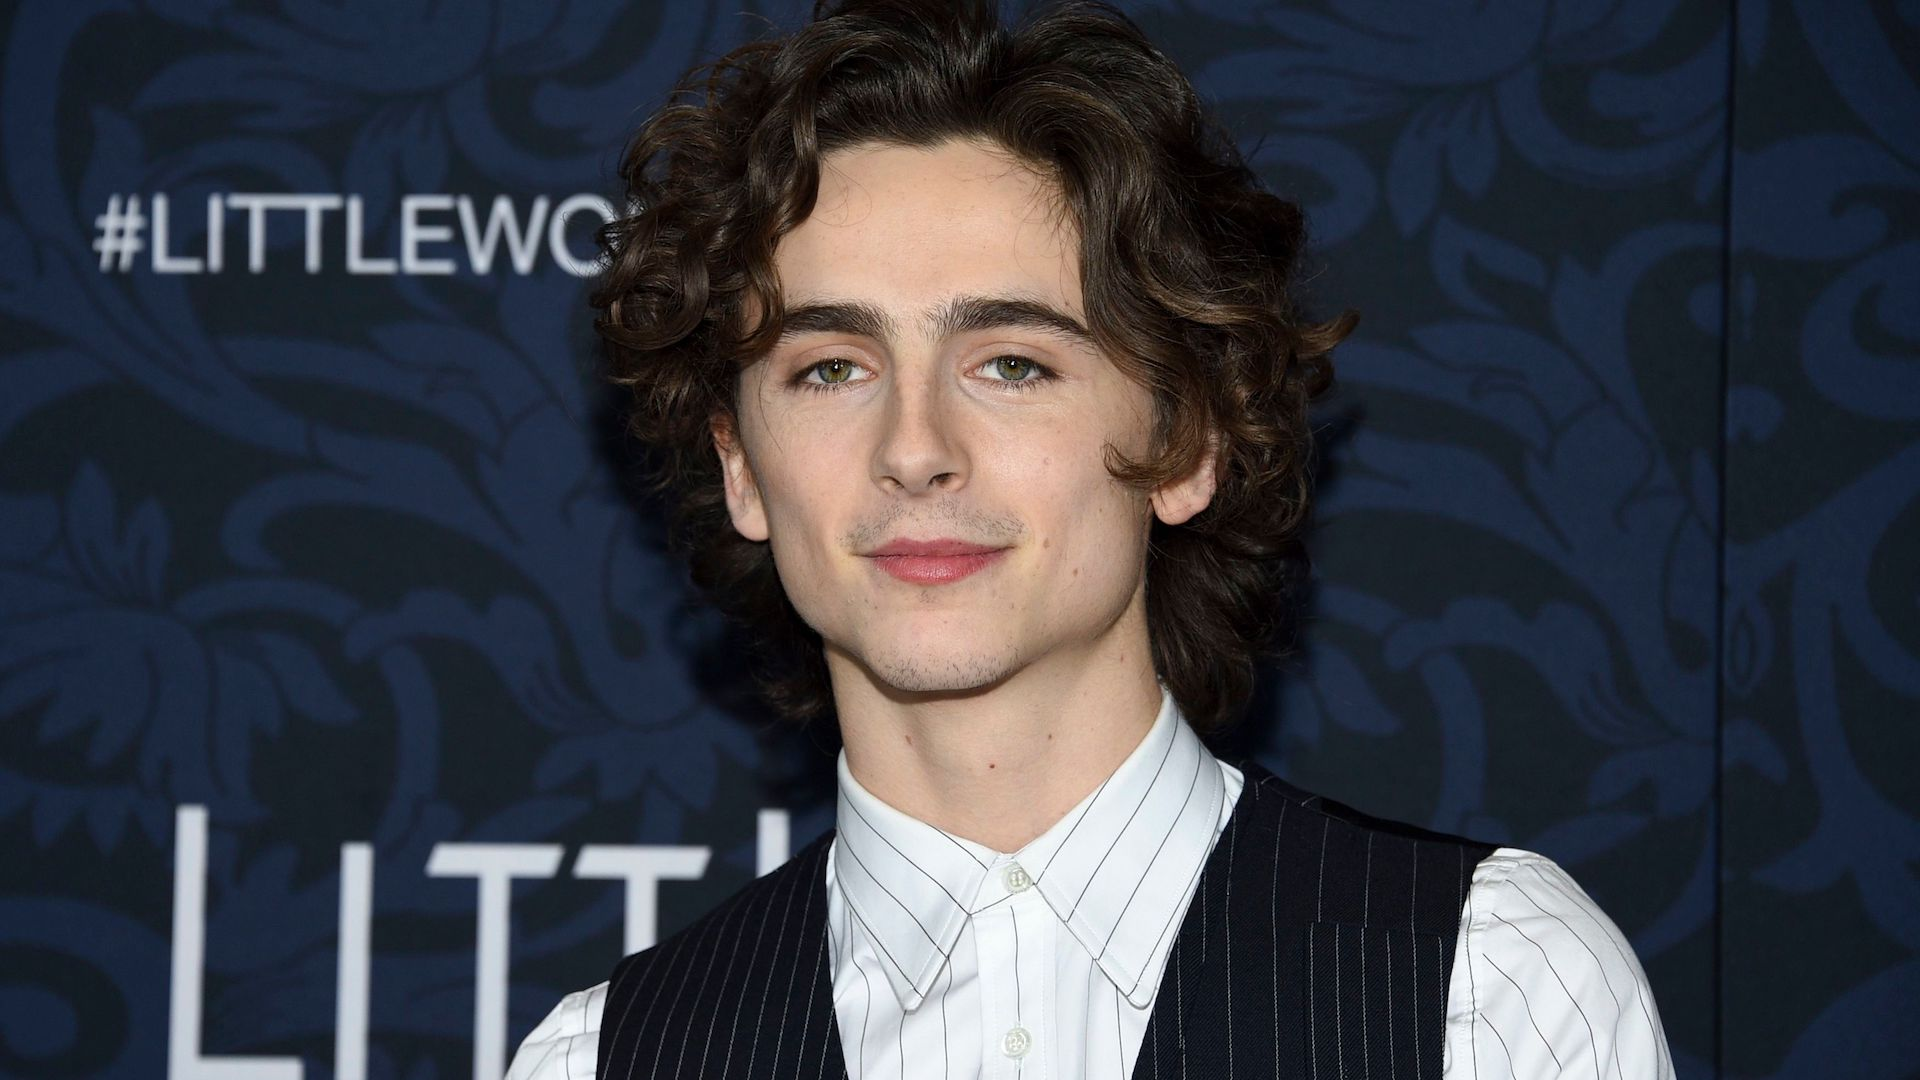 Timothée Chalamet Carried a Keychain Like a Purse on the Red Carpet, and I Am Deceased